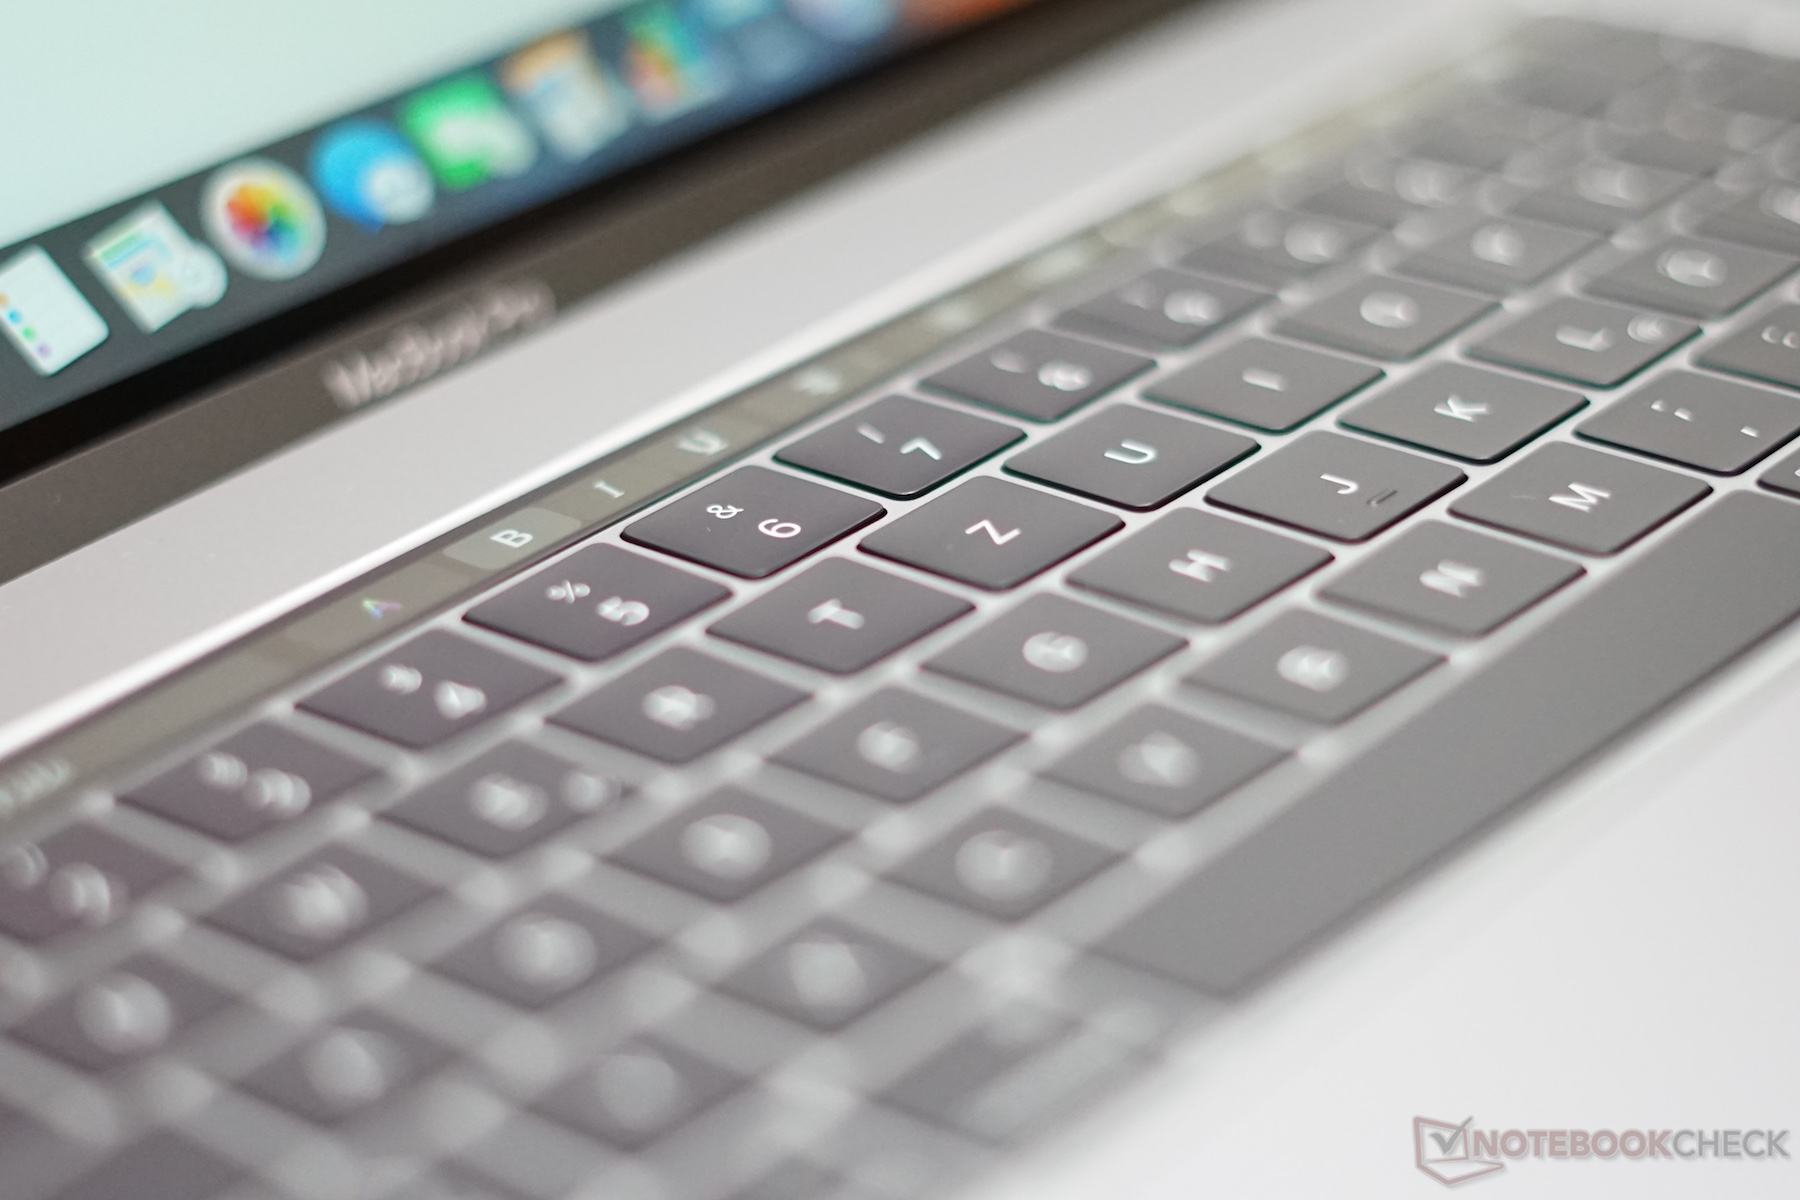 Apple Macbook Pro With Touch Bar Mlh32 154 I7 Ram 16gb 256gbradeon Mlw72 Silver 15inch 26ghz Quad Core 256gb Mlw82 512gb Garansi 2 Tahun Source Full Resolution